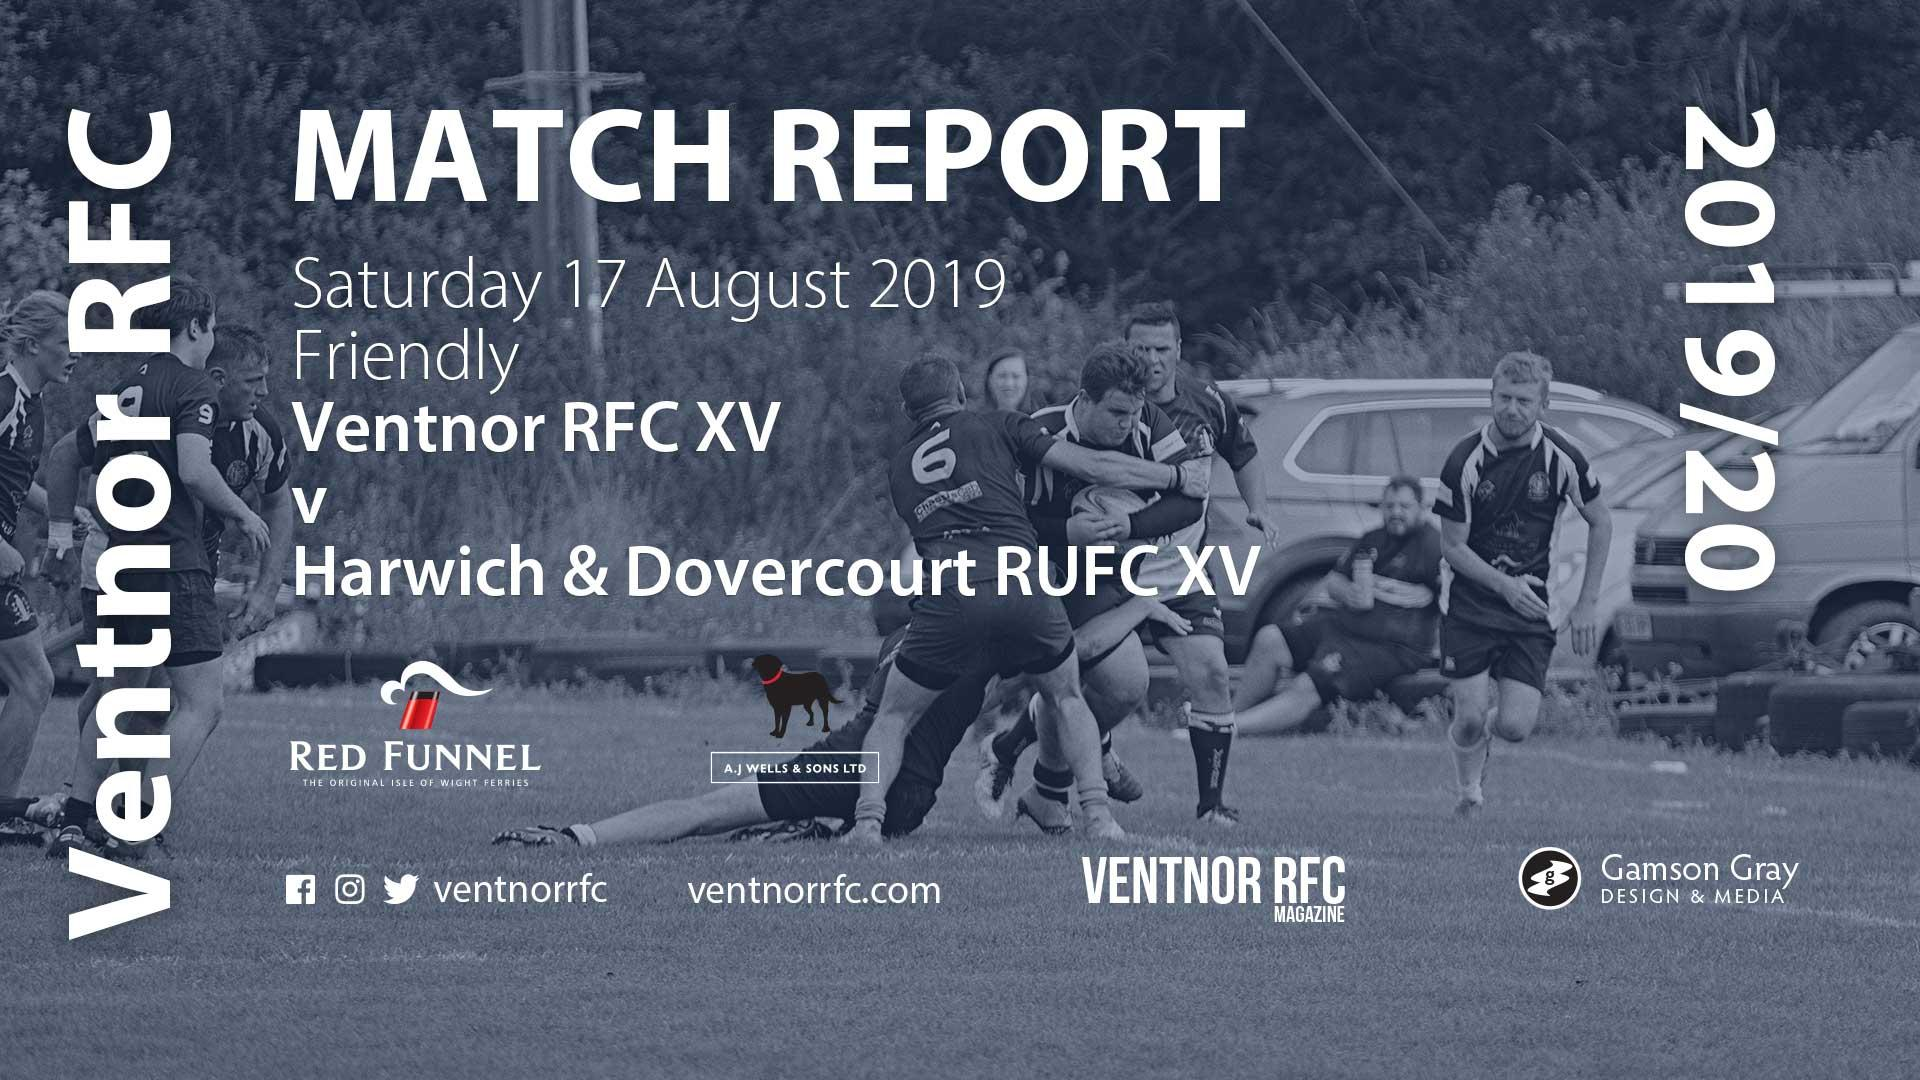 ventnor-xv-v-harwich-and-dovercourt-rufc-xv17082019-ventnor-rfc-facebook-news-1980